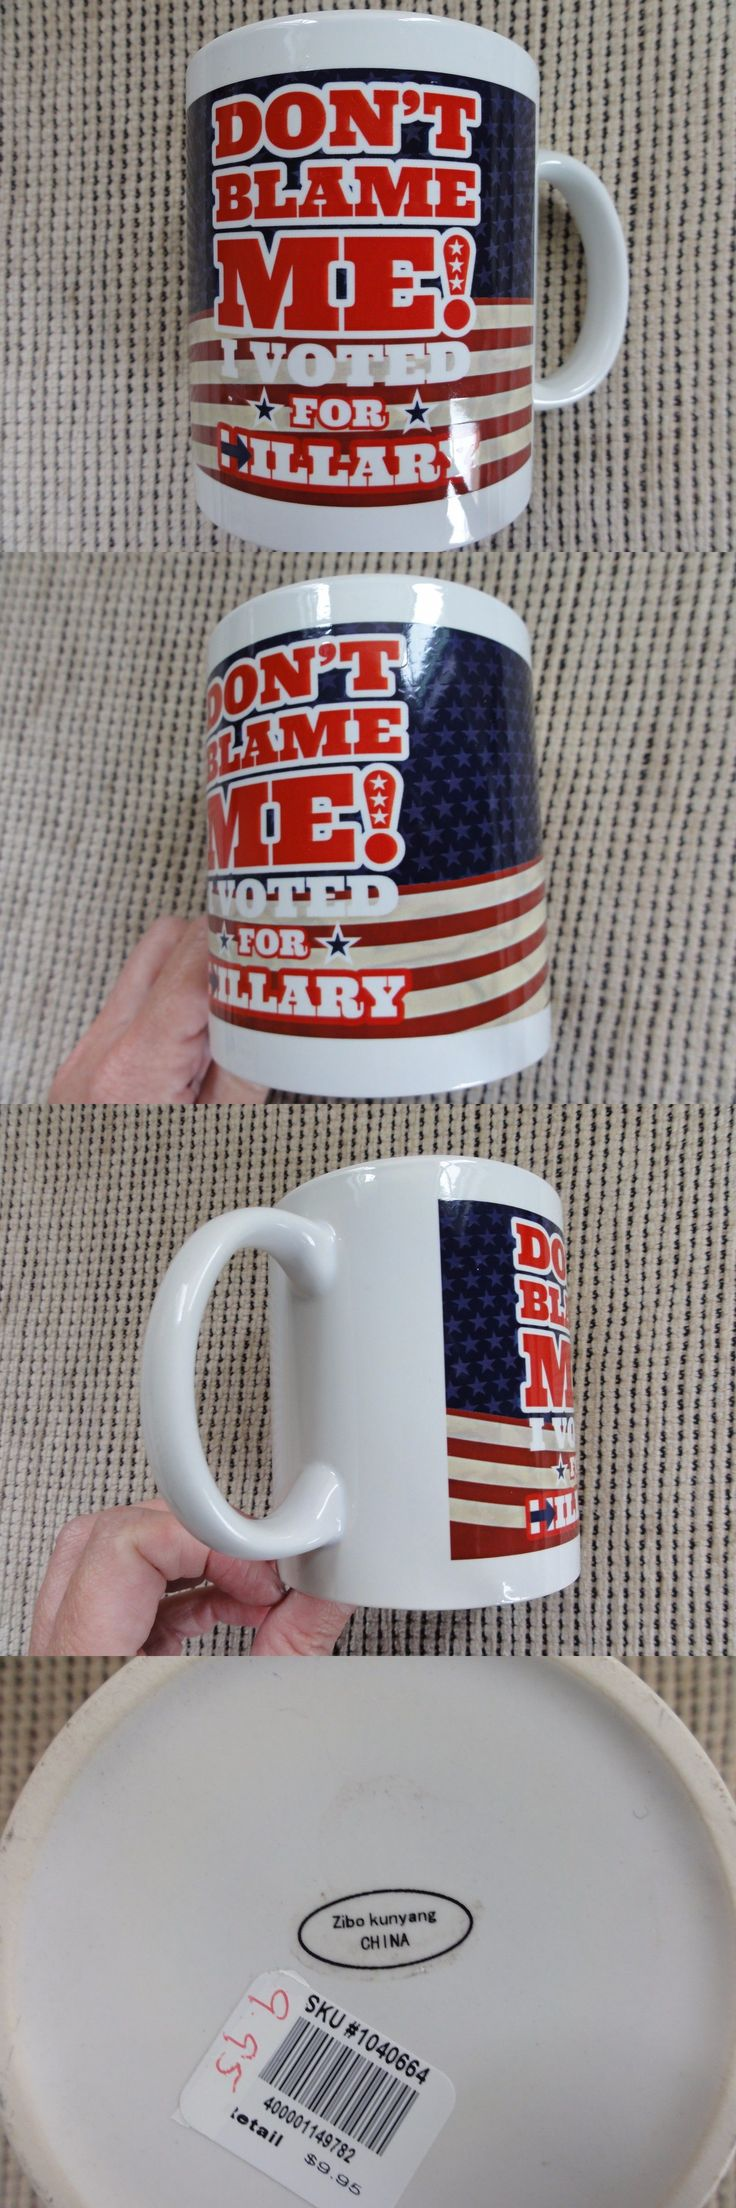 Hillary Clinton: Hillary Clinton President 2016 Election 11Oz Coffee Mug Cup White Democrat Gop -> BUY IT NOW ONLY: $9.95 on eBay!